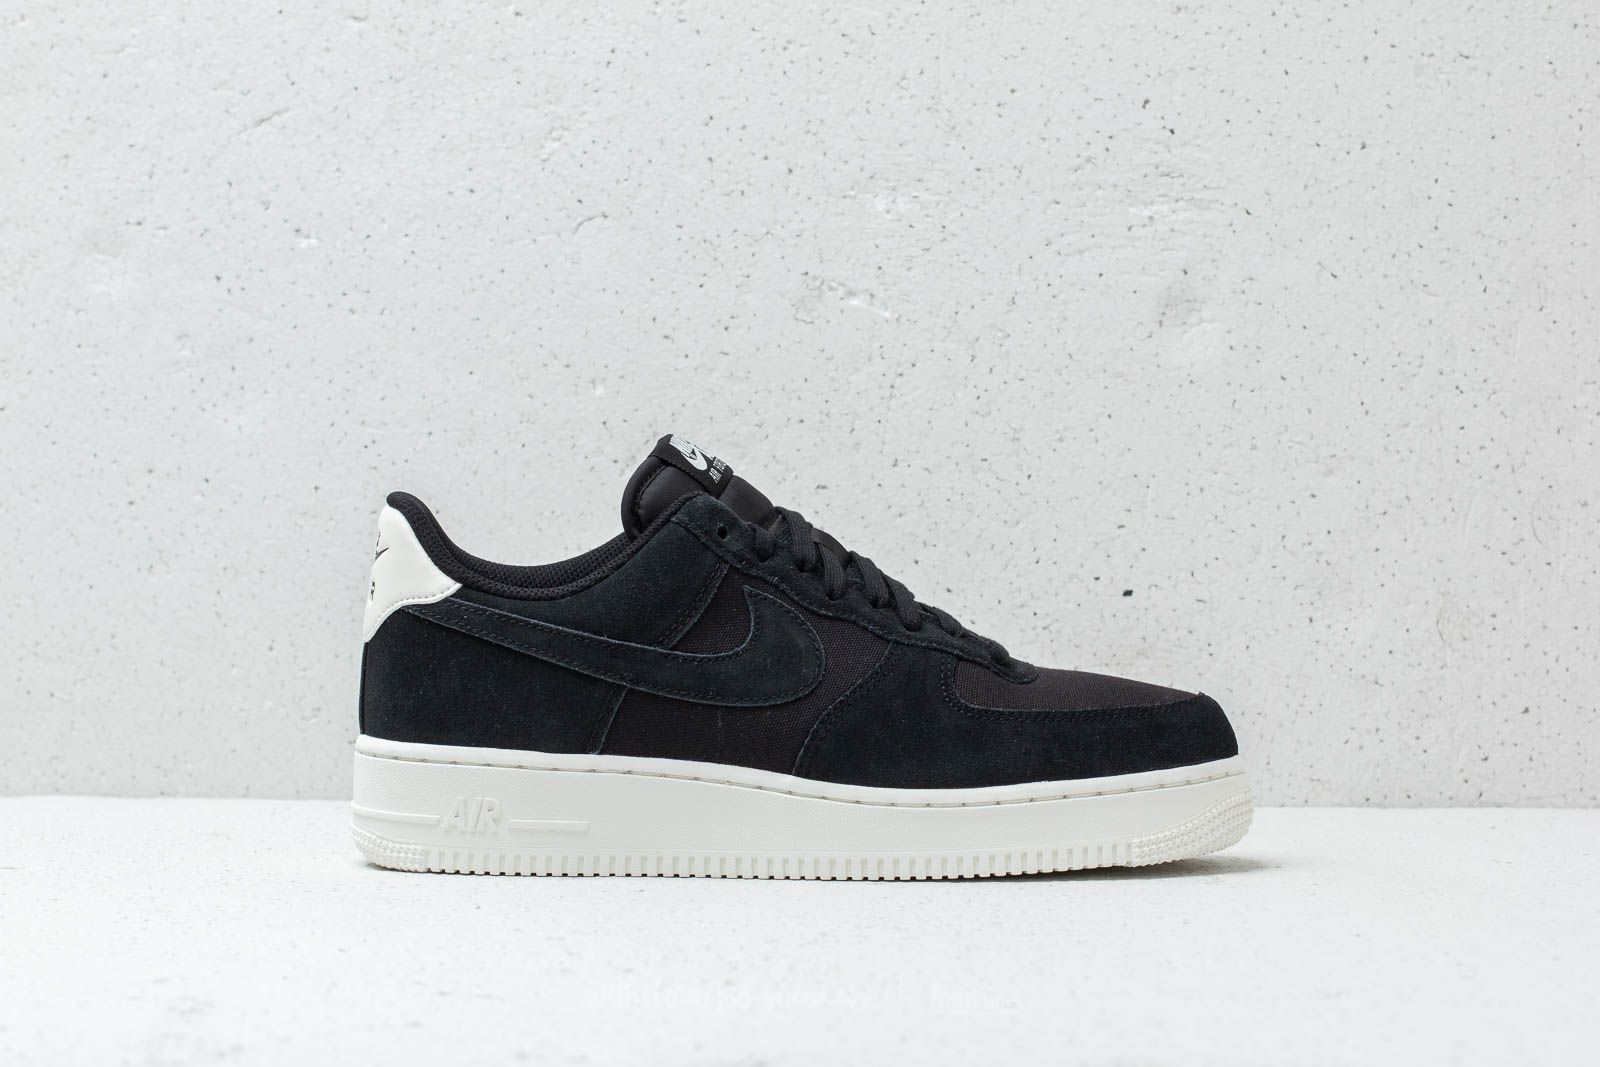 d1e367cca9 Nike Air Force 1 `07 Suede Black/ Black-Sail at a great price